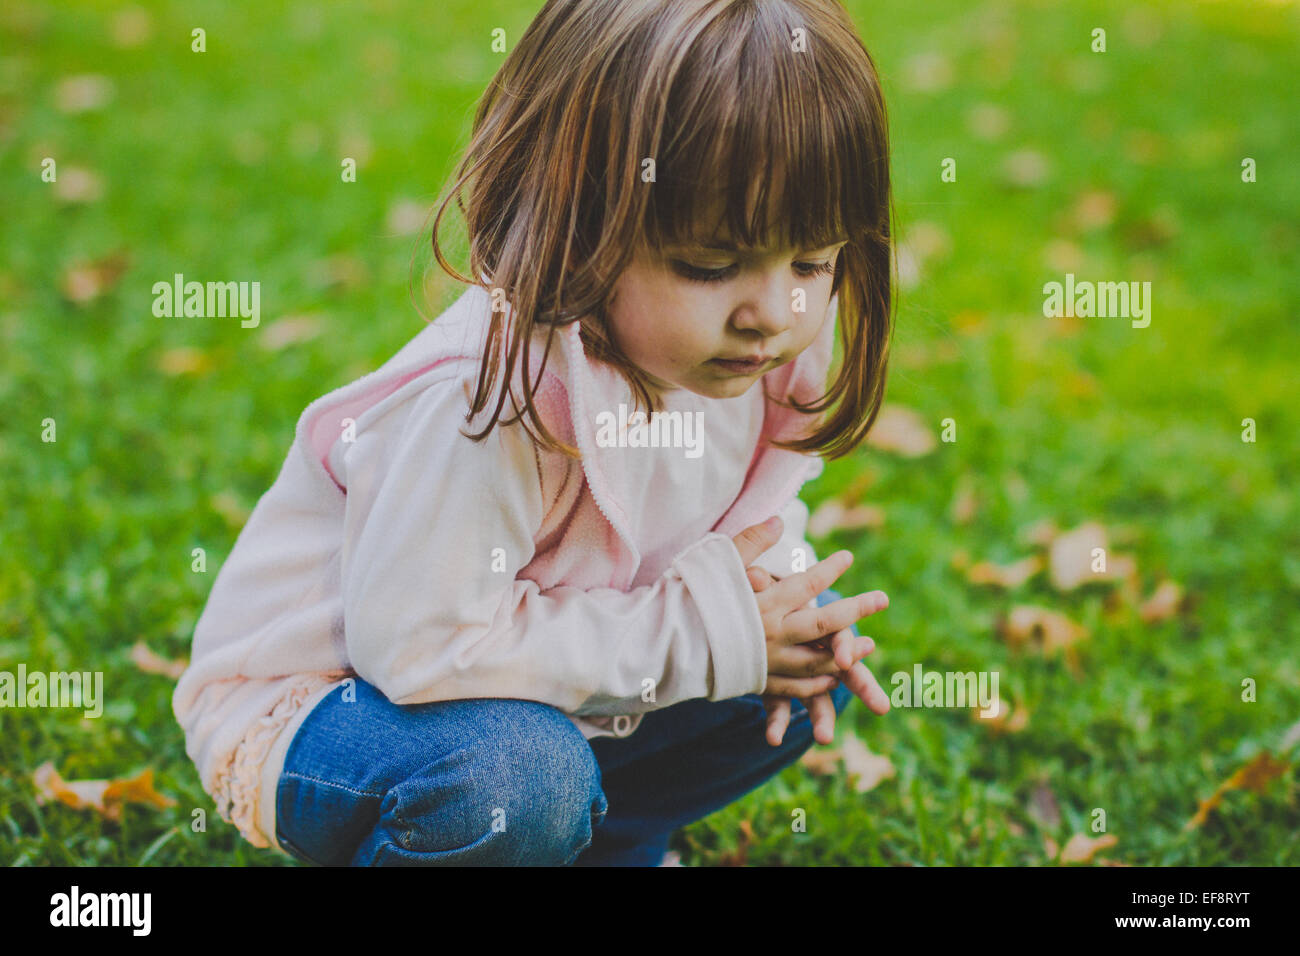 Portrait of Girl (2-3) accroupi sur l'herbe Photo Stock